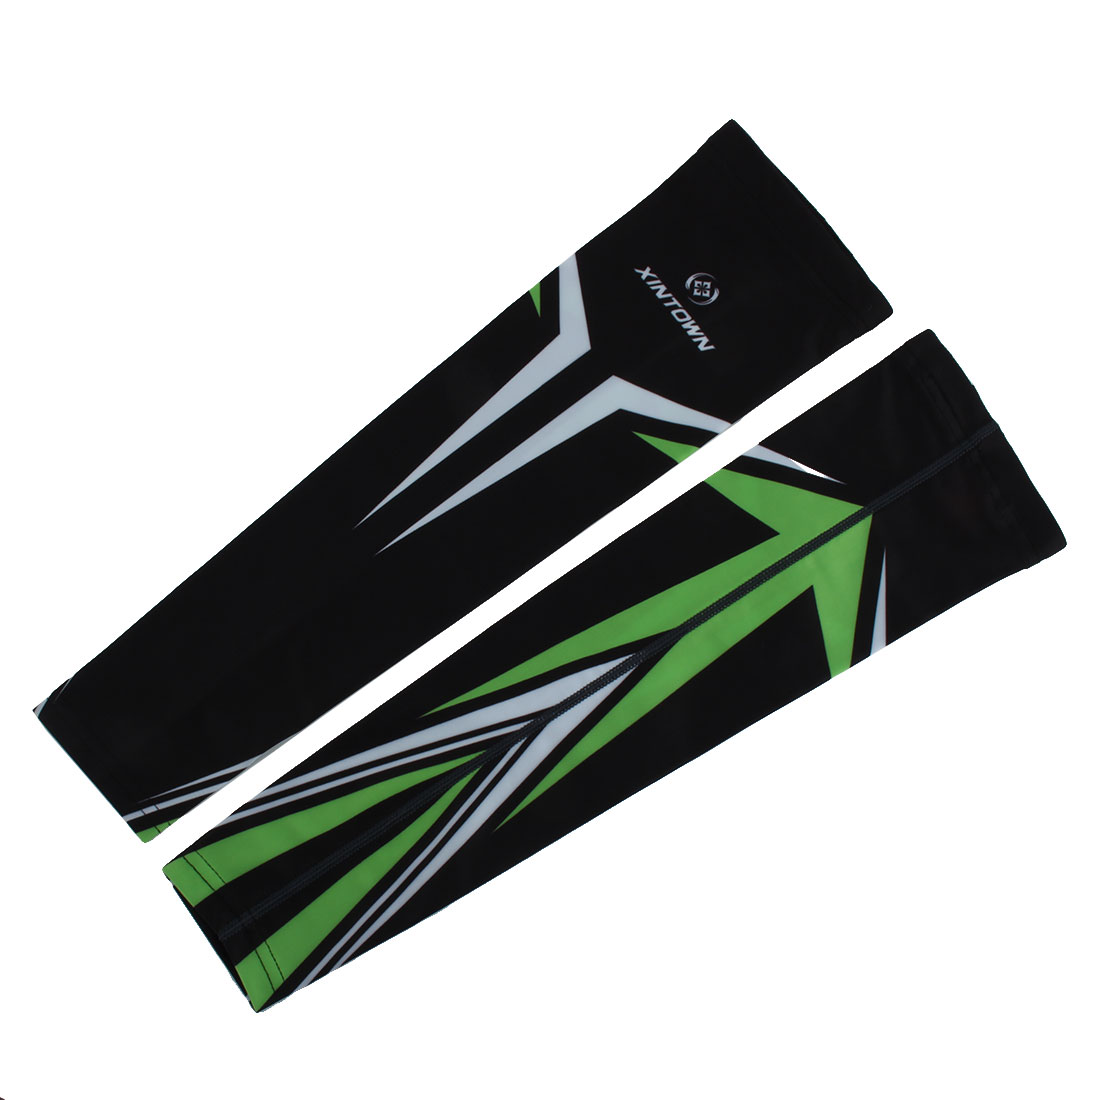 XINTOWN Authorized Unisex Outdoor Sports Cycling Football UV Protection Arm Sleeves Cover Warmer Pair #10 M by